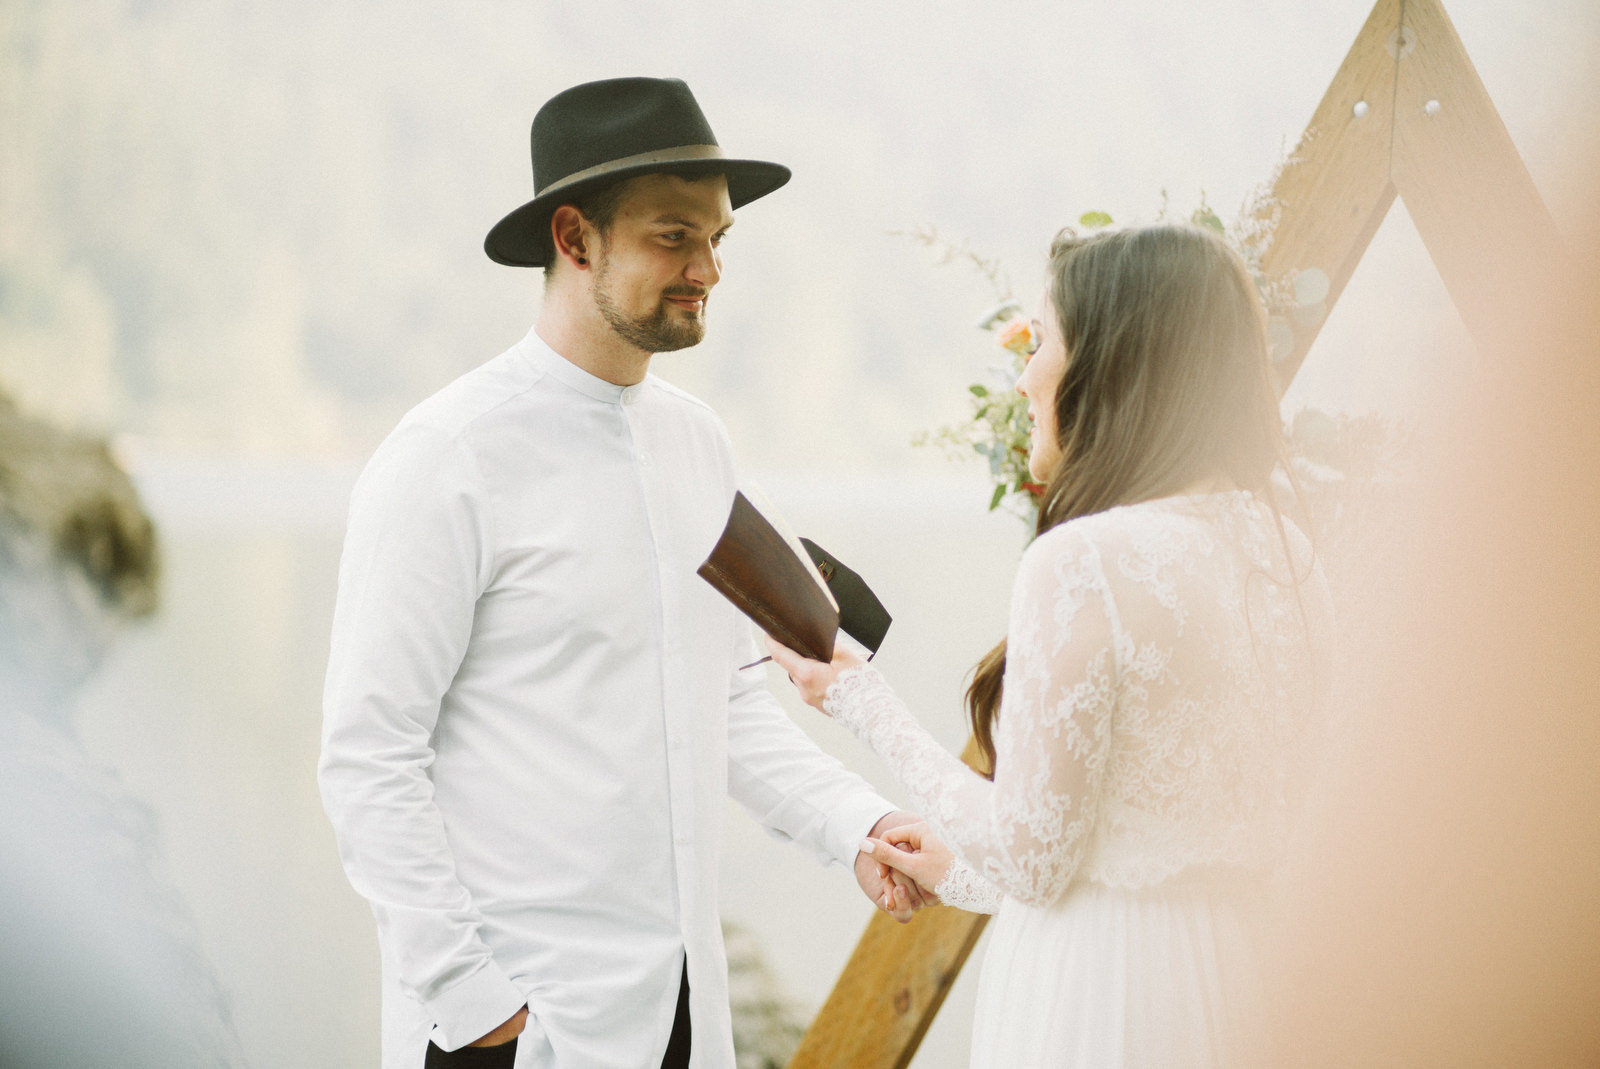 athena-and-camron-seattle-elopement-wedding-benj-haisch-rattlesnake-lake-christian-couple-goals45